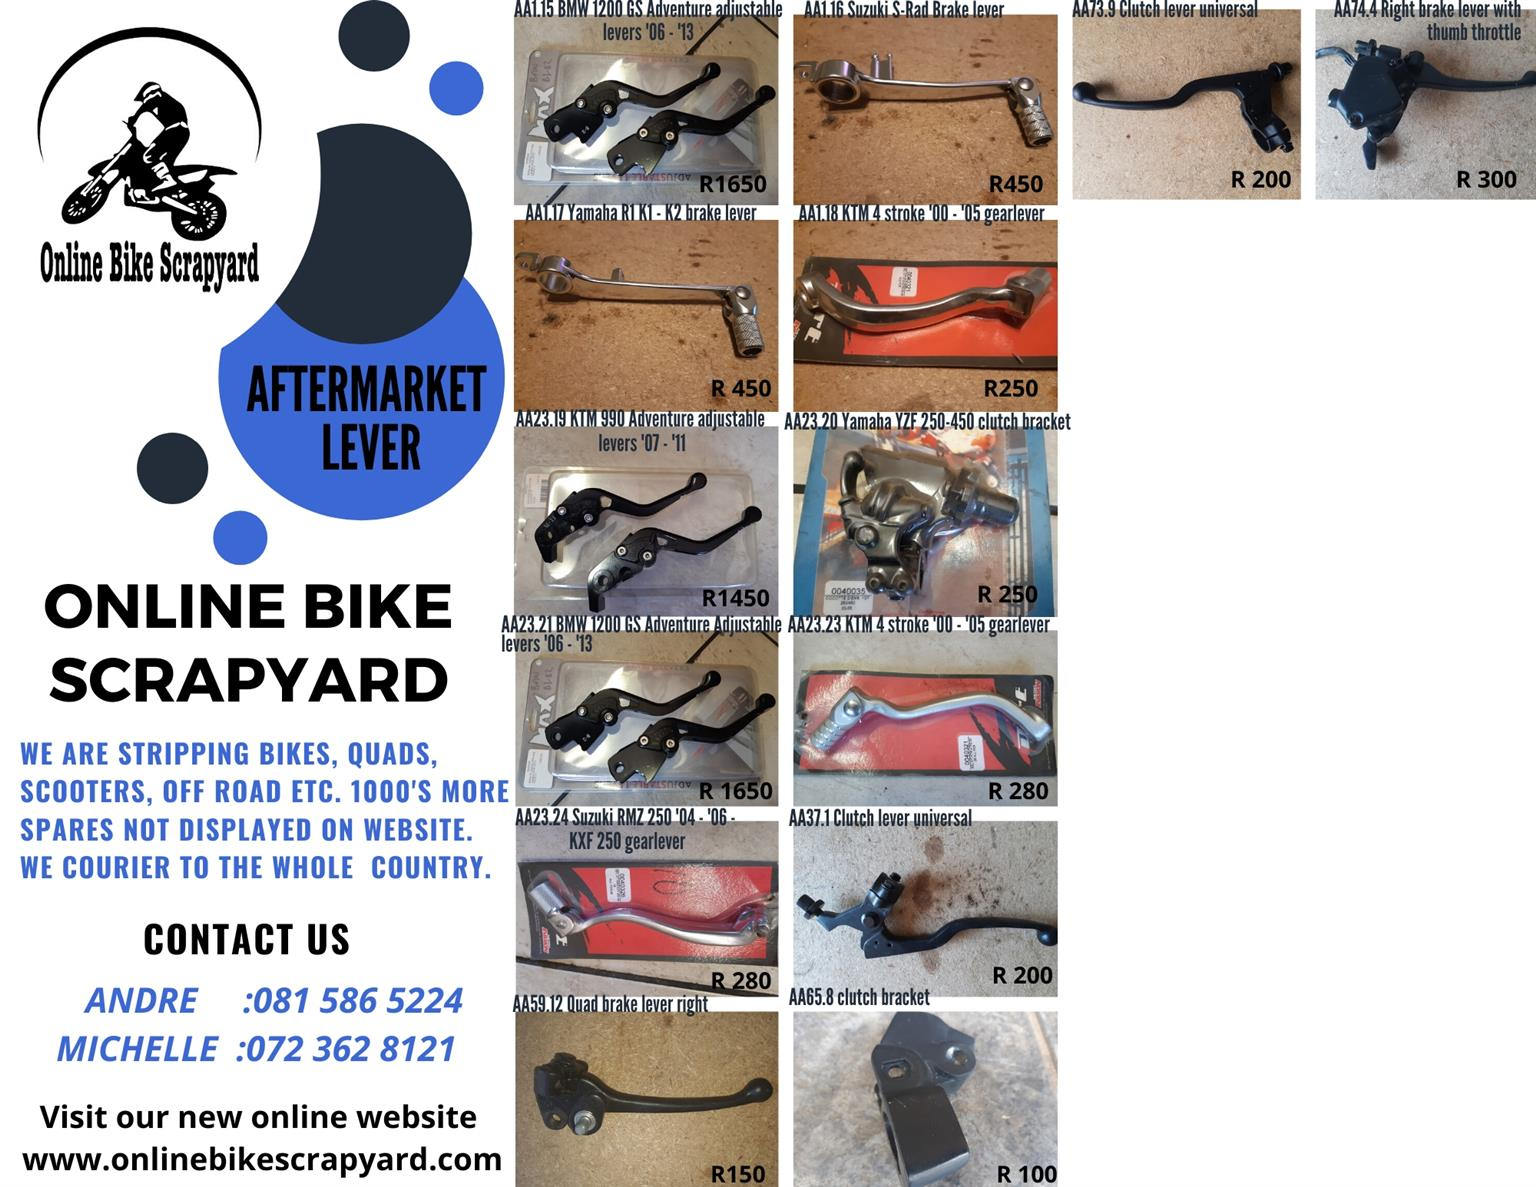 Aftermarket Motorcycle Levers